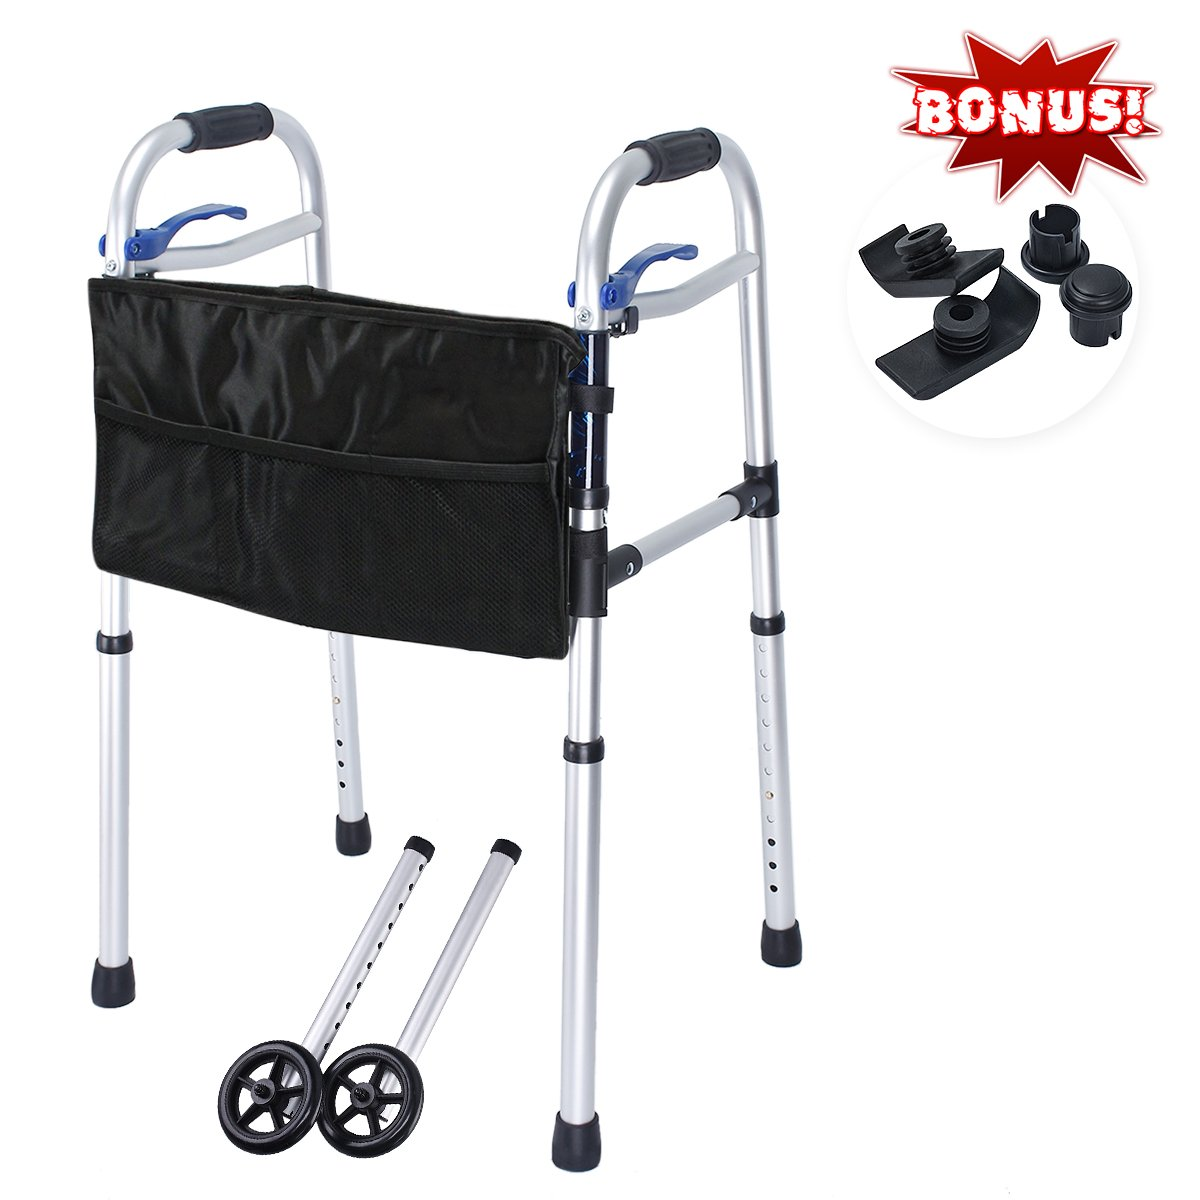 Healthline Deluxe 4-in-1 Trigger Release Aluminium Folding Walker with Extra 5'' wheels and Storage Bag, Supports up to 350 lbs